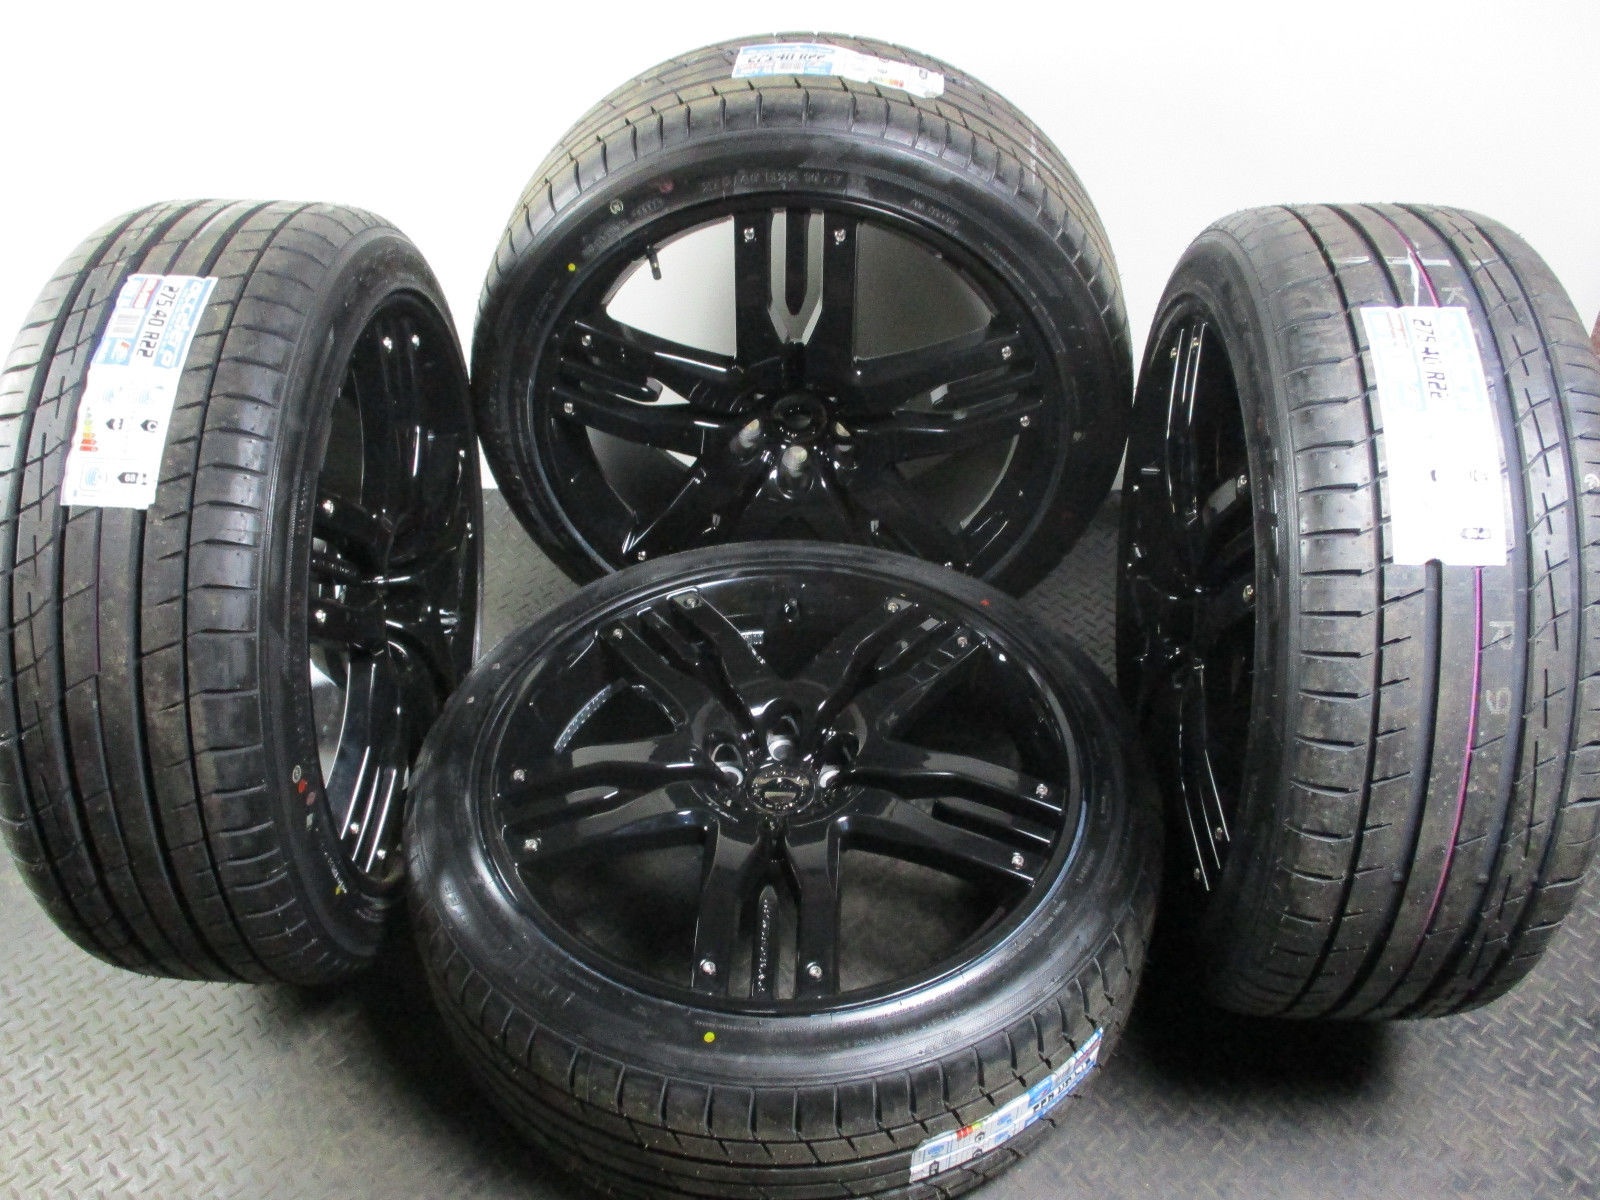 Overfinch Olympus 22 Inch Range Rover Alloy Wheels Piano Gloss Black With Tyres